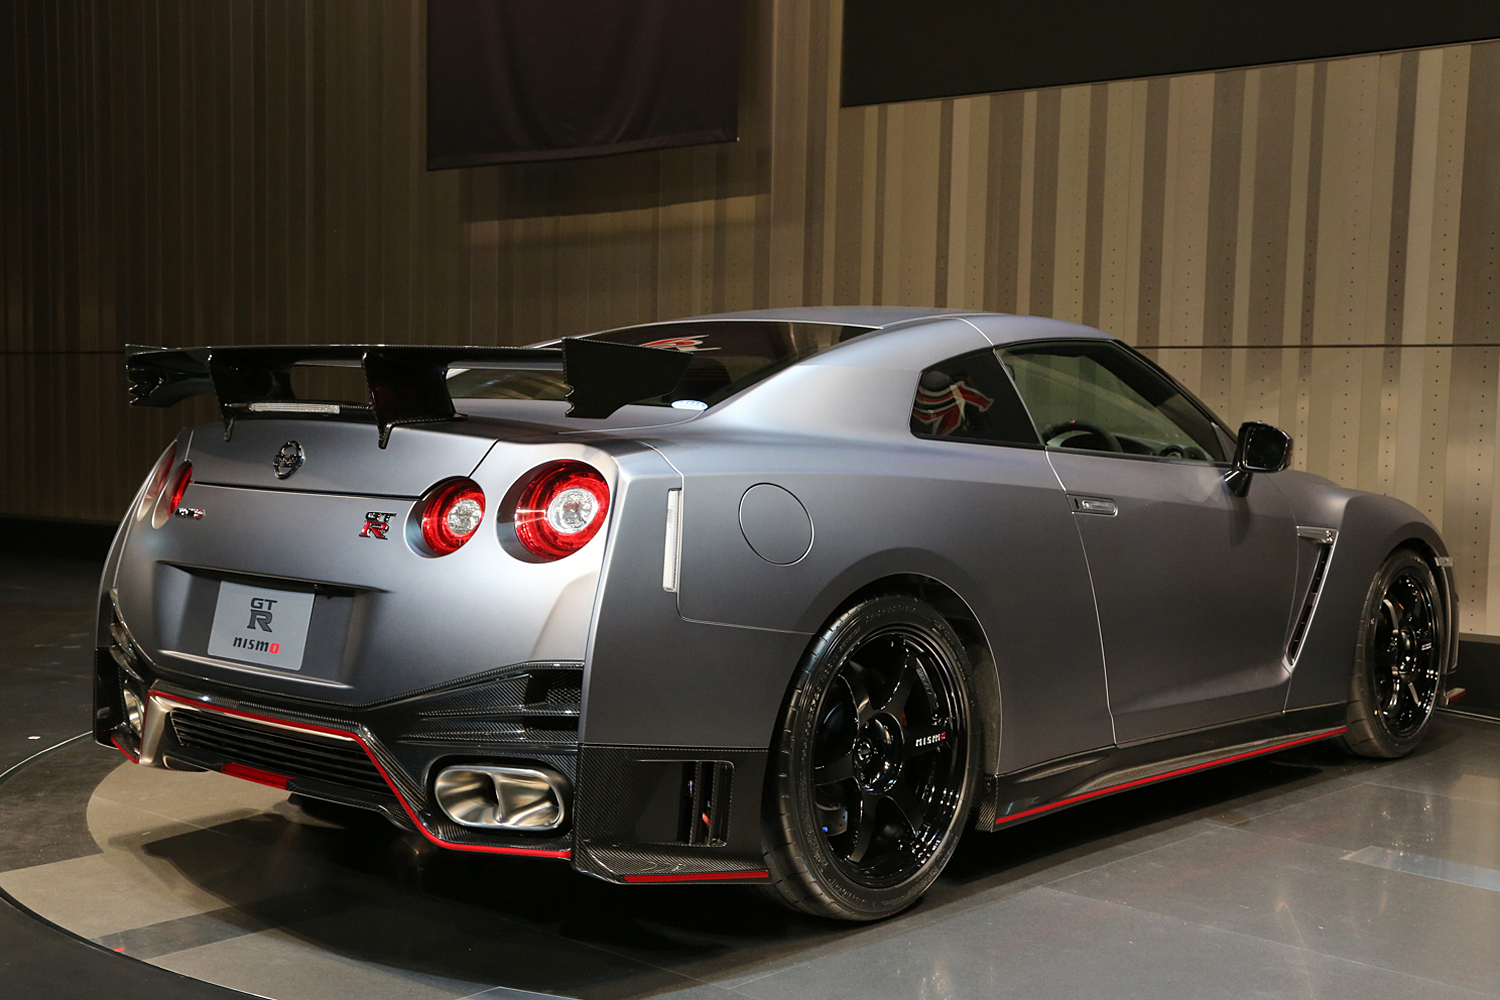 2017 Nissan Gt R Nismo Wallpapers Hd Images: Gray Nissan GT-R Nismo Wallpapers